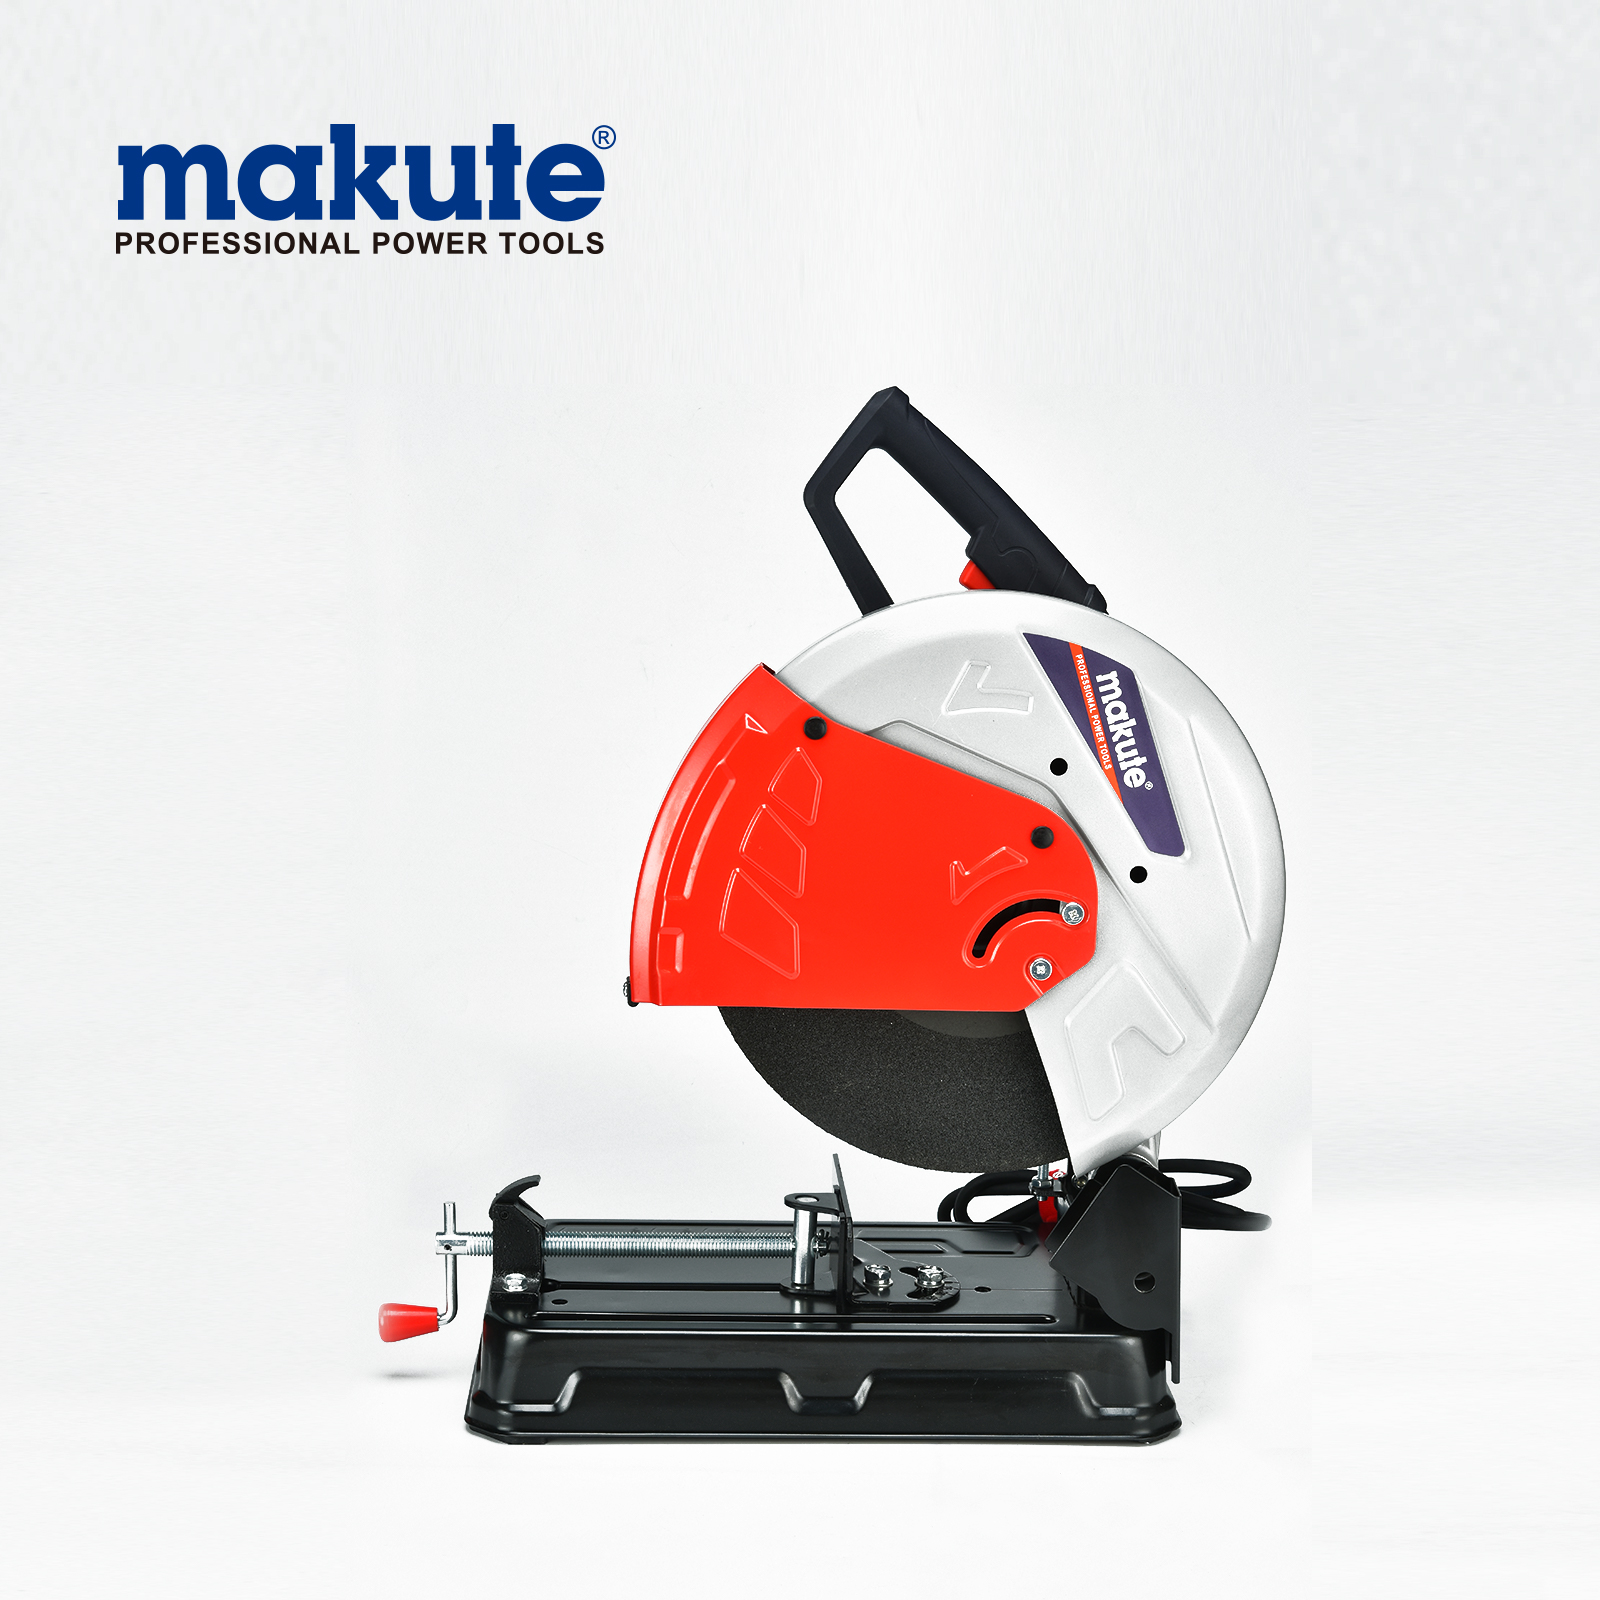 MAKUTE custom cut marble table top power tools CM002 cut off machine